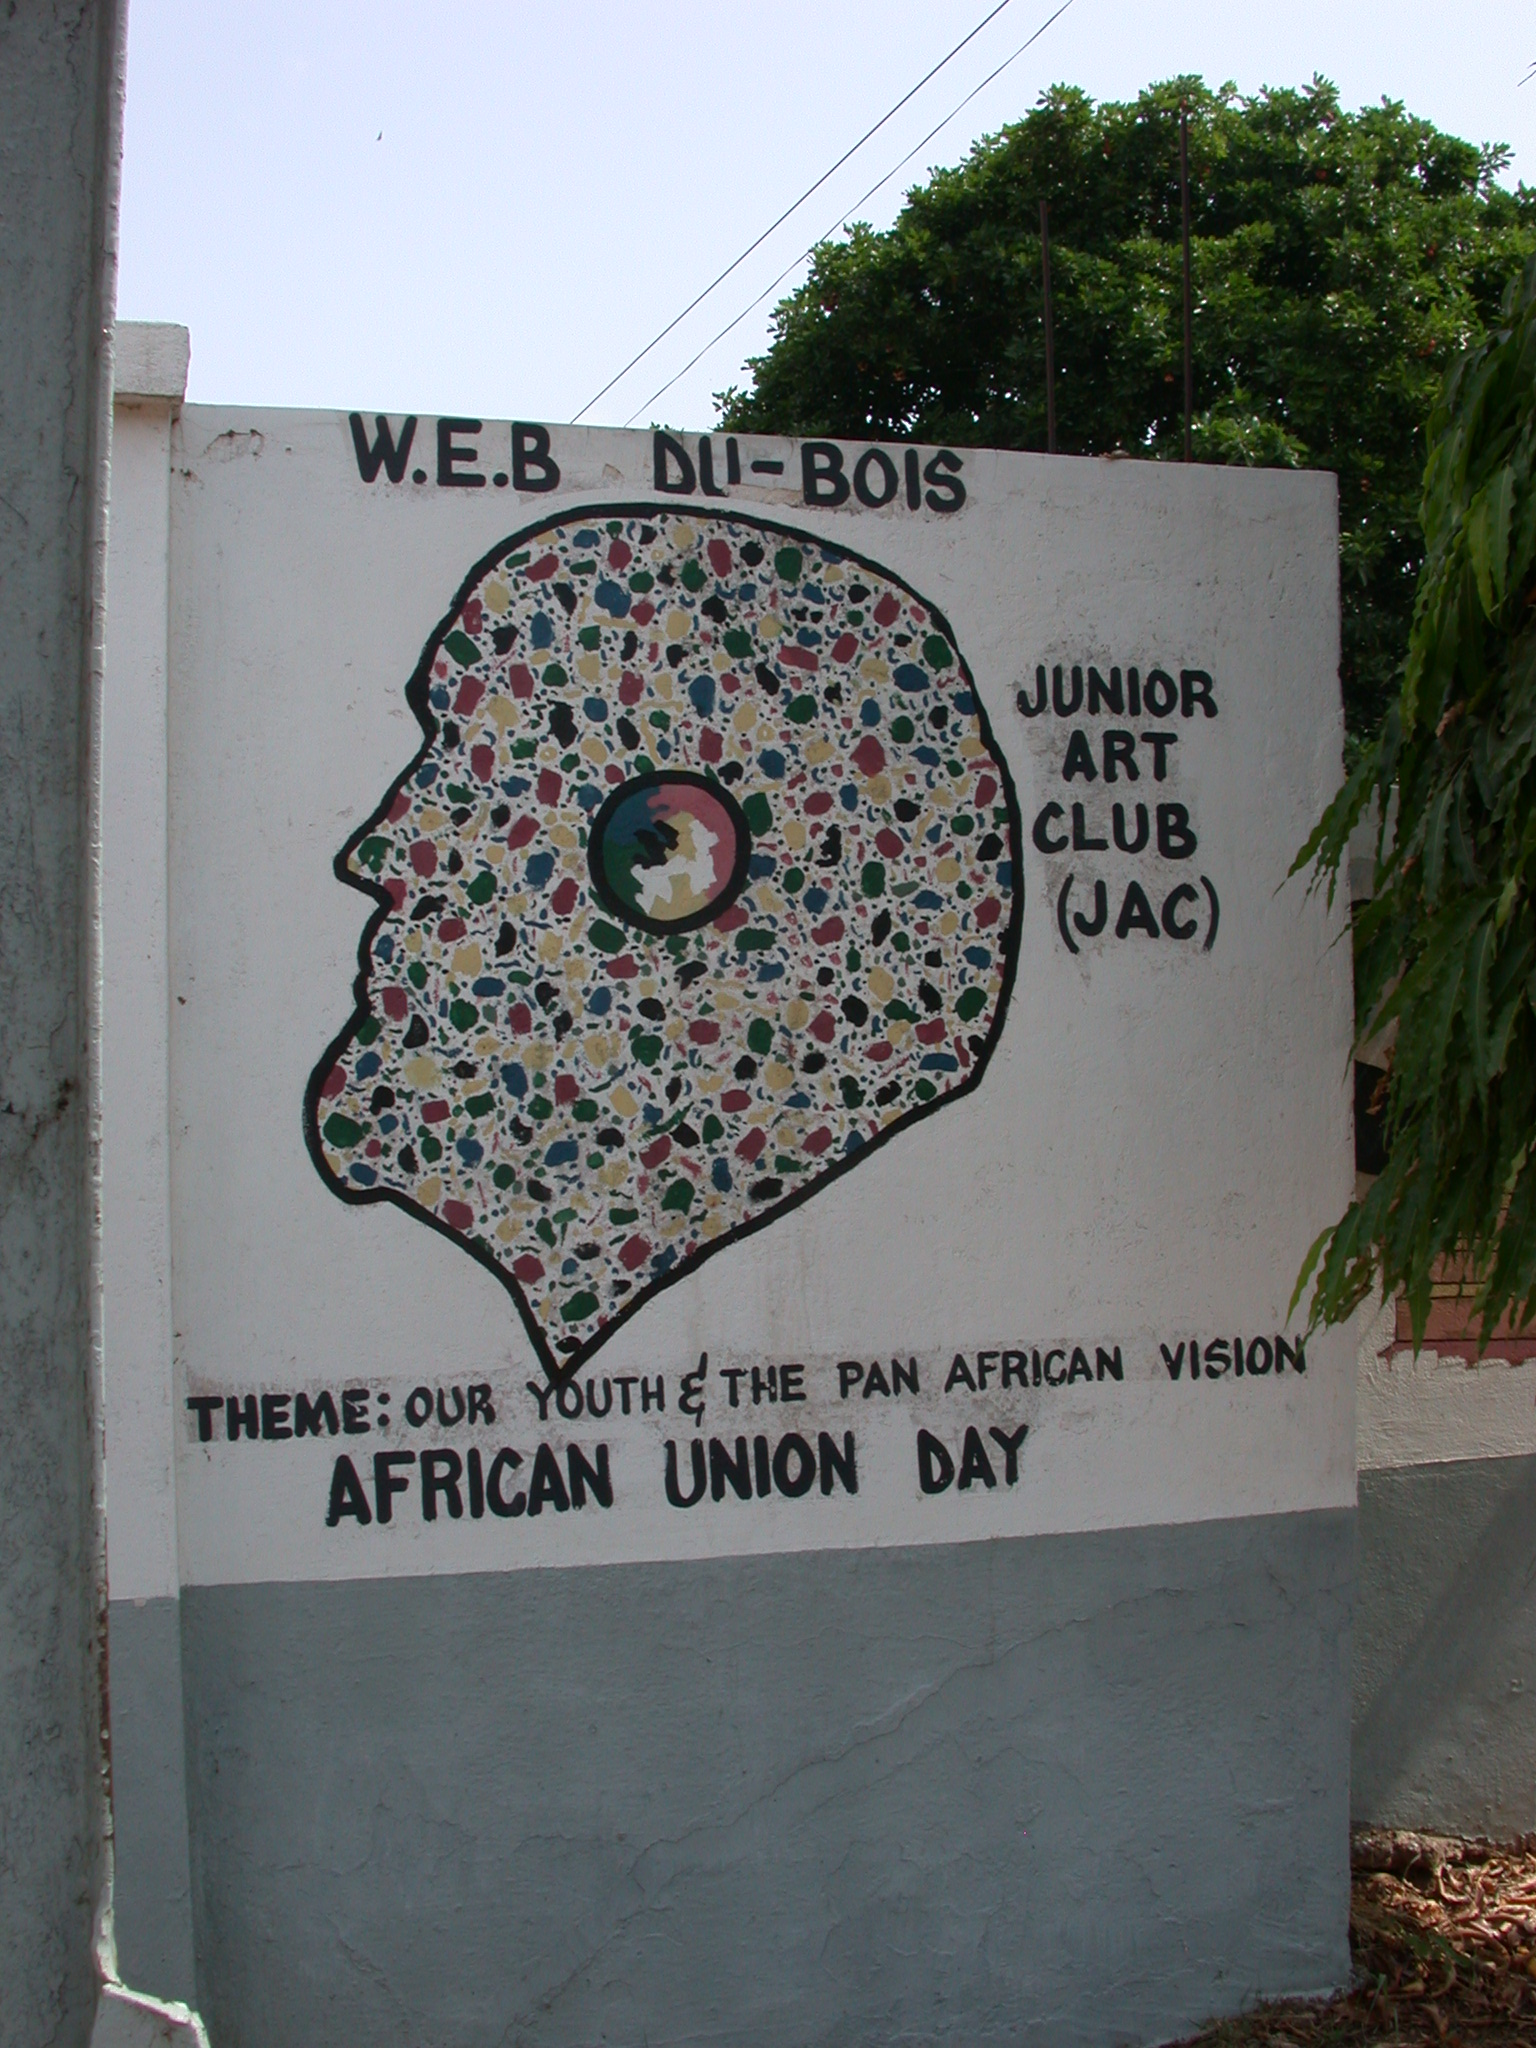 w e b du bois stardust s shadow sign from web dubois junior art club commemorating african union day web dubois memorial centre